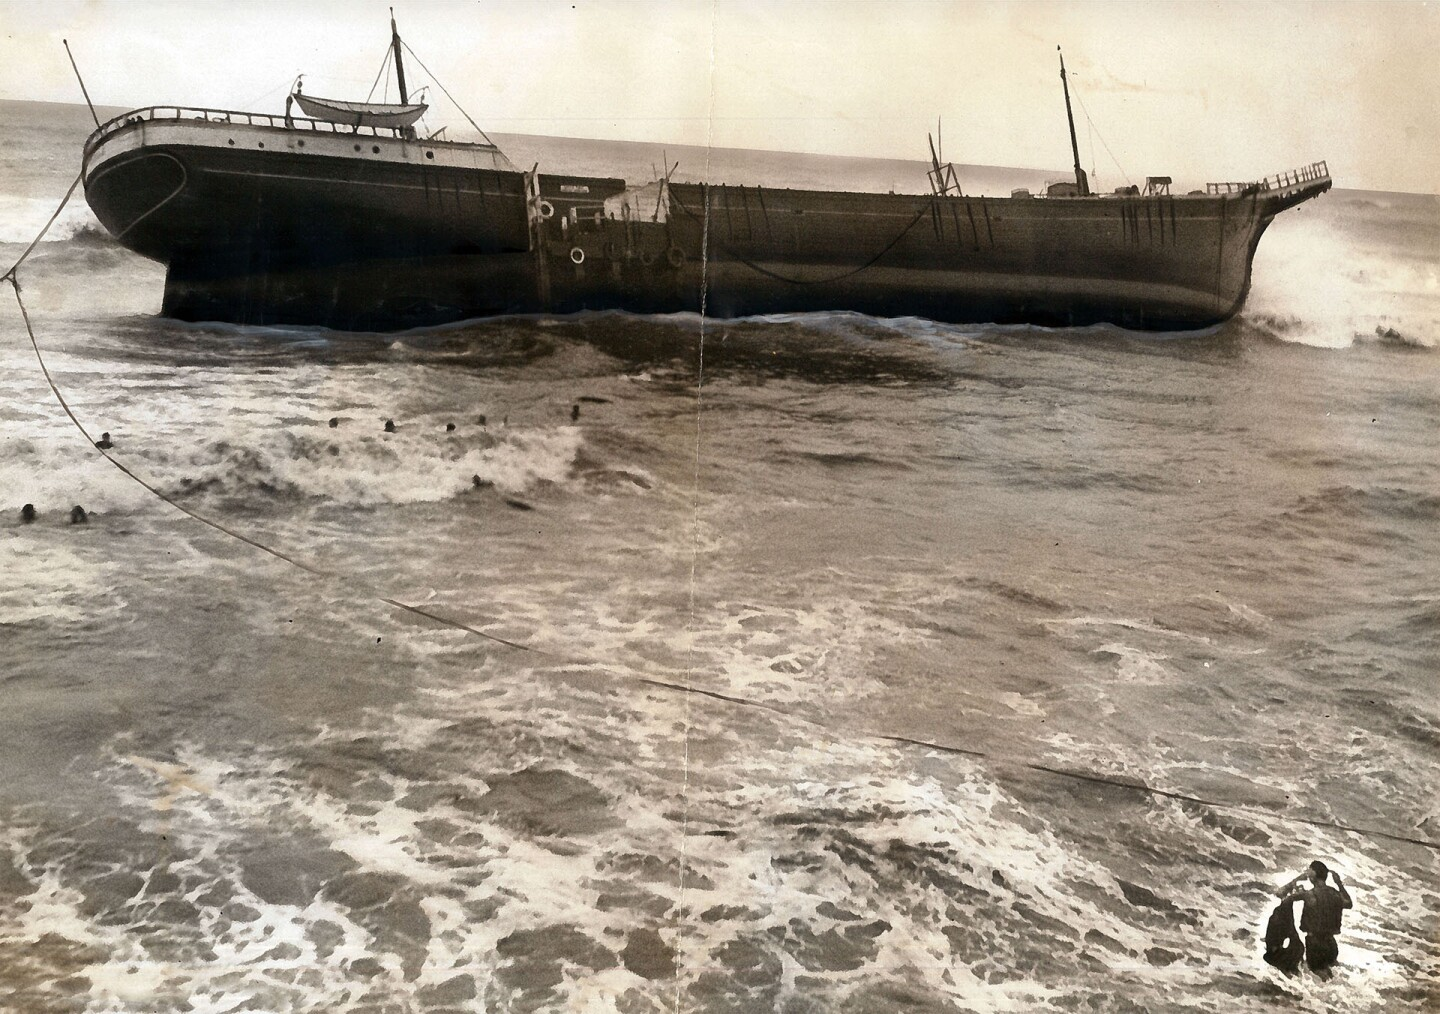 The fishing barge Minne A. Caine, swept ashore near Santa Monica by the 1939 tropical storm. Photo courtesy of the USC Libraries – Los Angeles Examiner Collection.